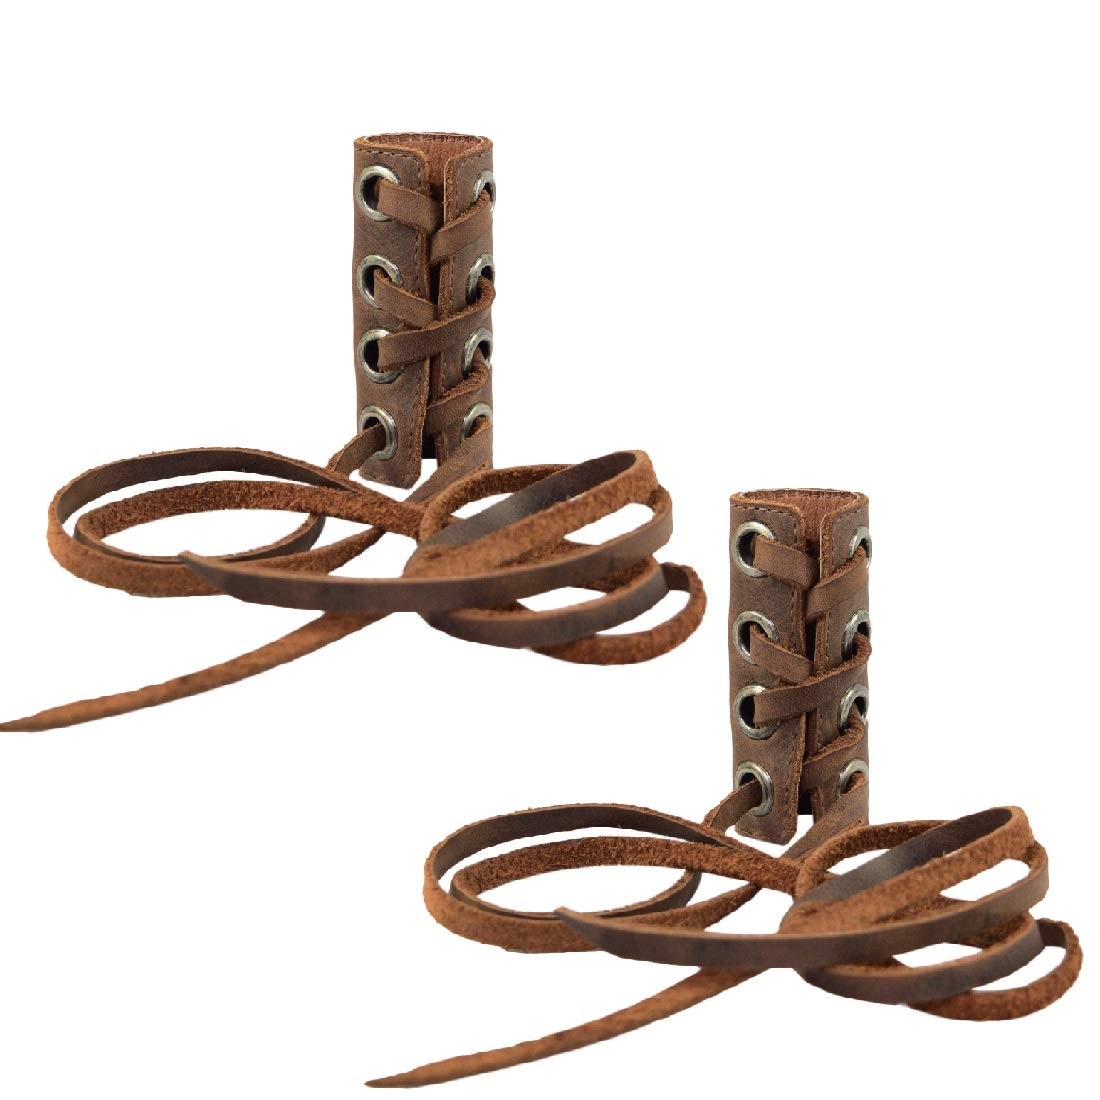 Hide & Drink, Leather Hair Ties (2 Pack) / Ponytail / Braid Holder / Wraps / Long Hair Accessories, Handmade Includes 101 Year Warranty :: Bourbon Brown